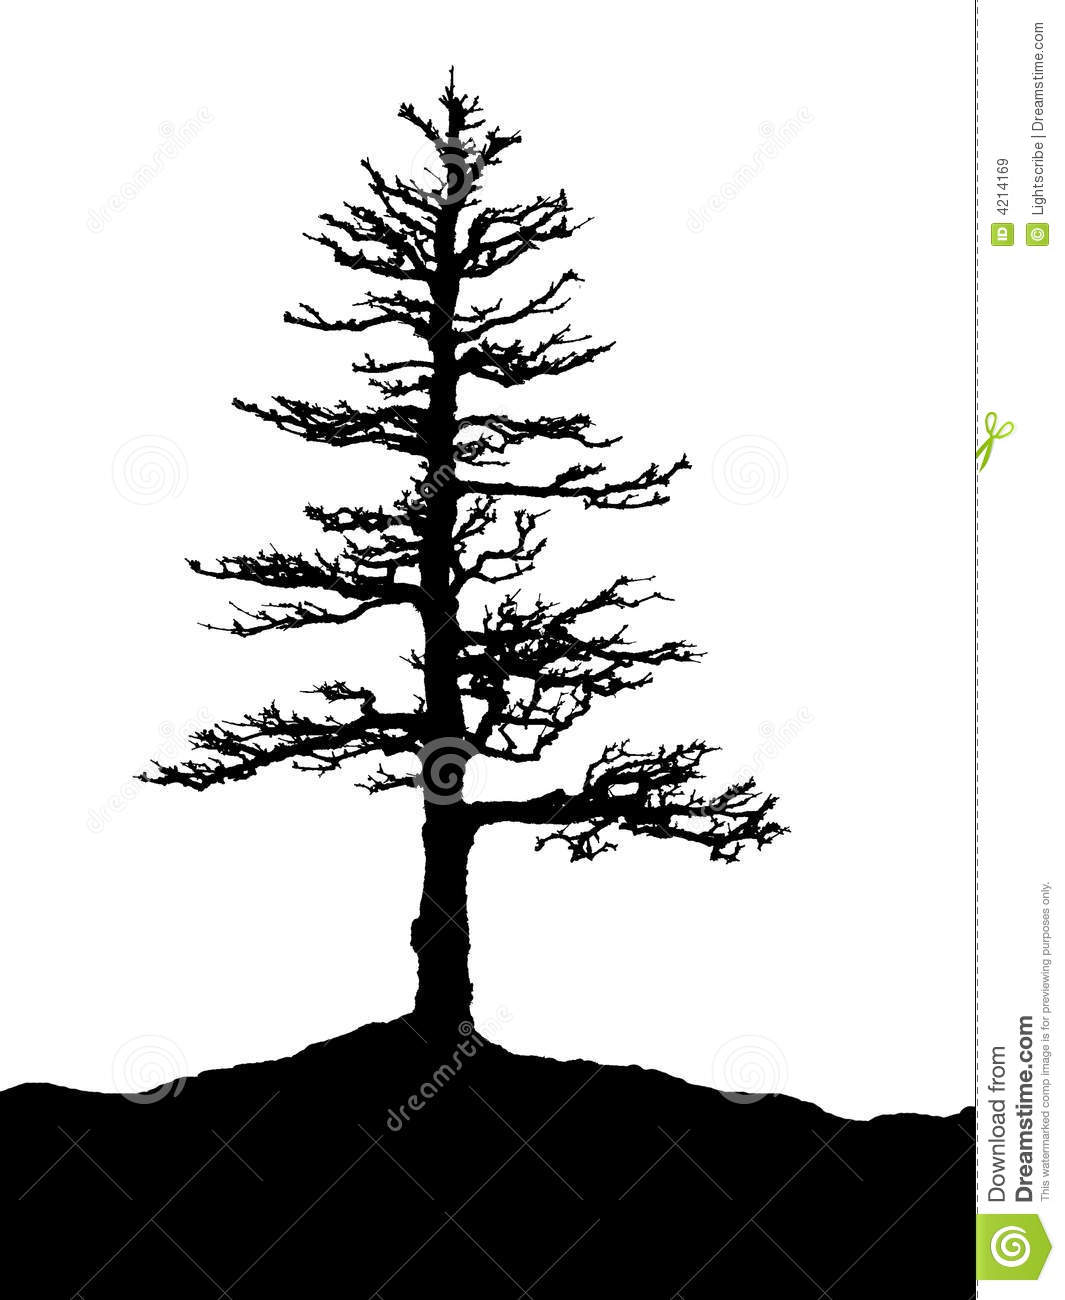 Tree Silhouette Royalty Free Stock Images - Image: 4214169